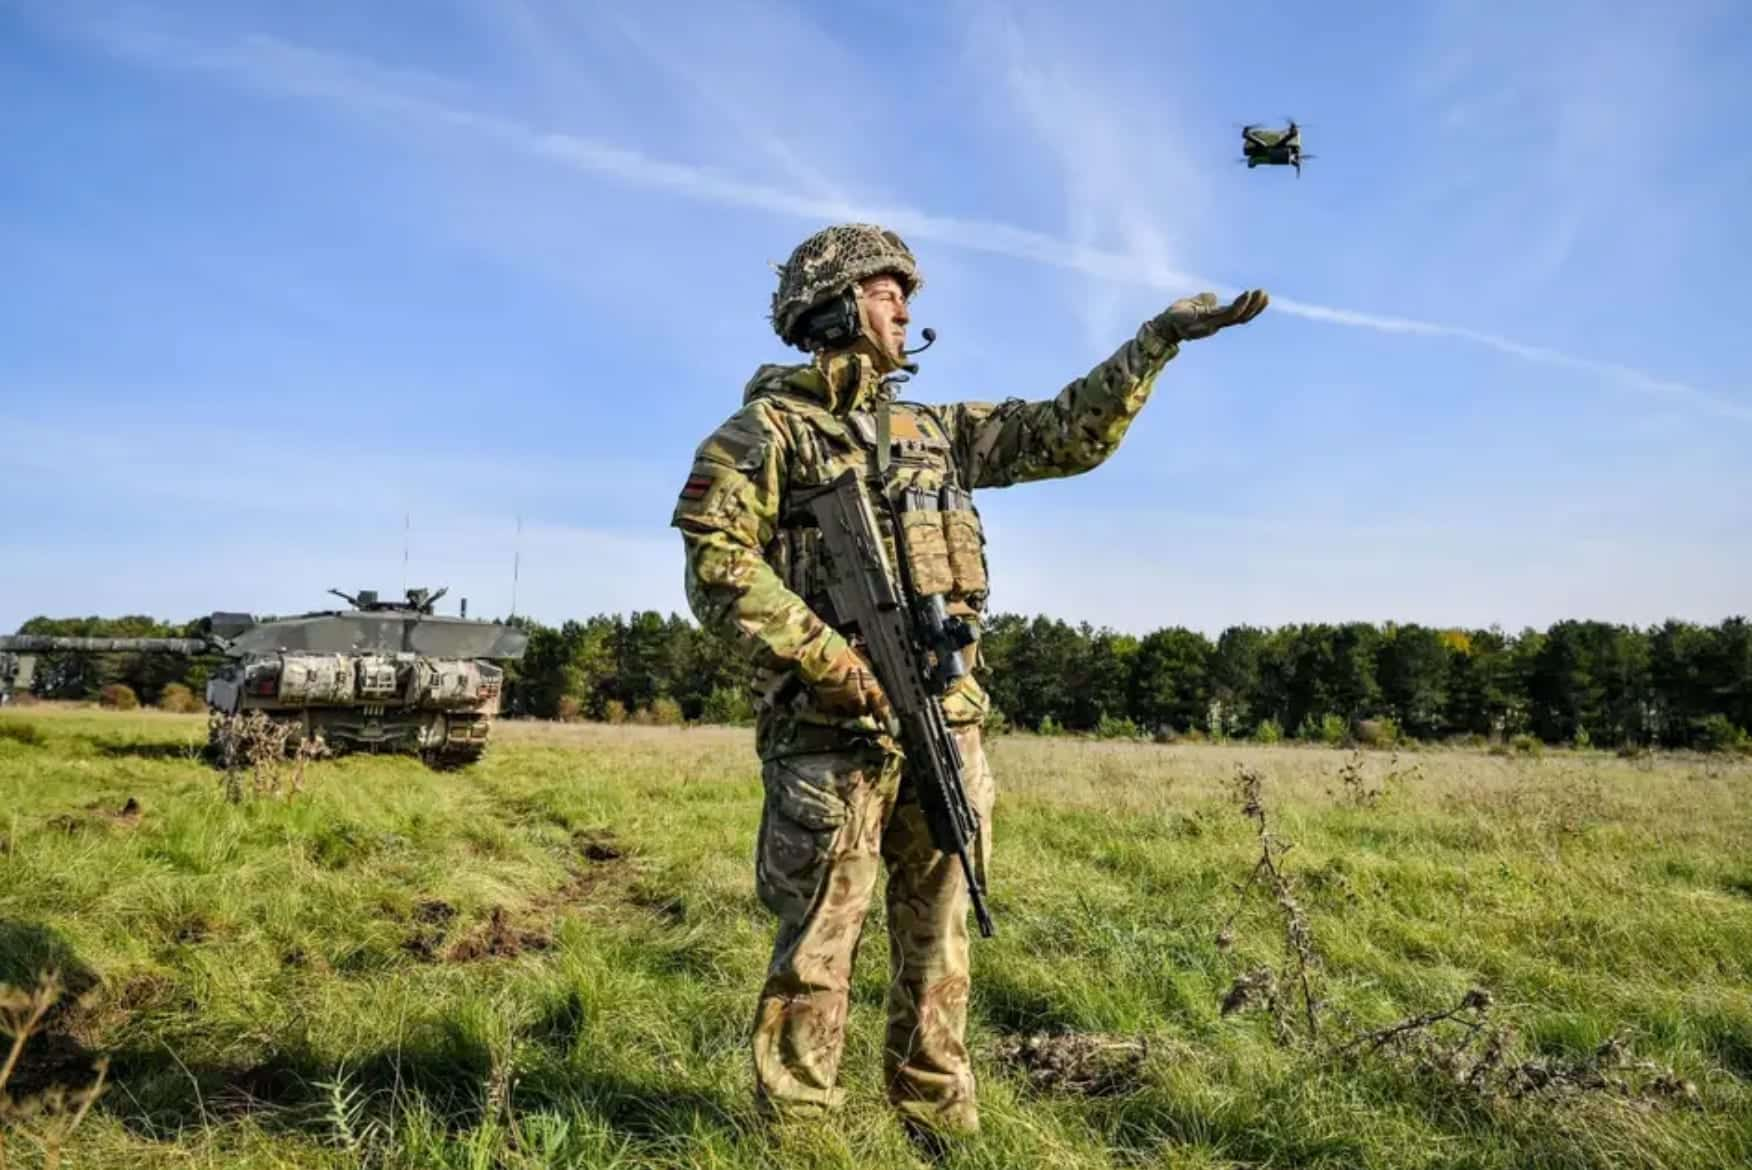 Drone swarms would overwhelm the British Army experts warn